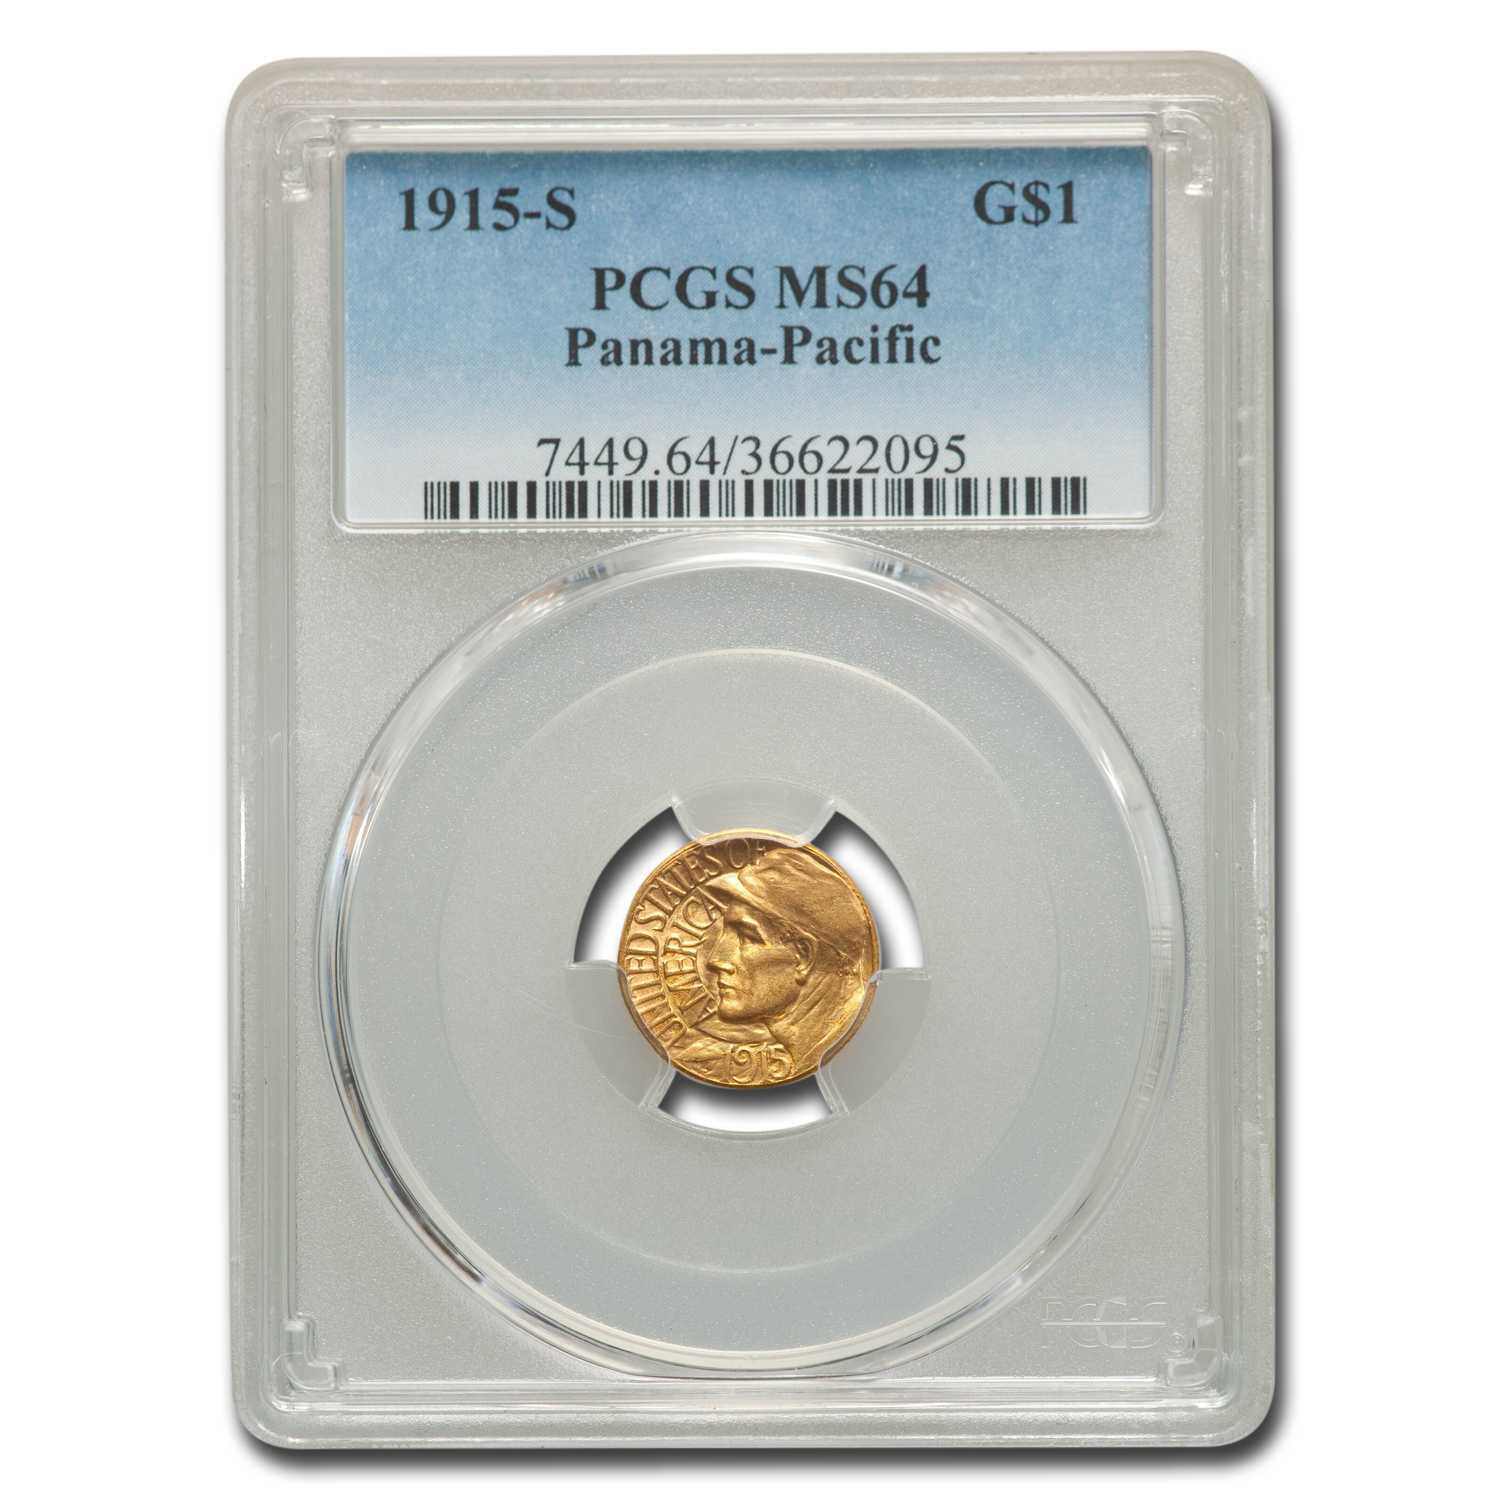 1915-S $1.00 Gold Panama-Pacific MS-64 PCGS